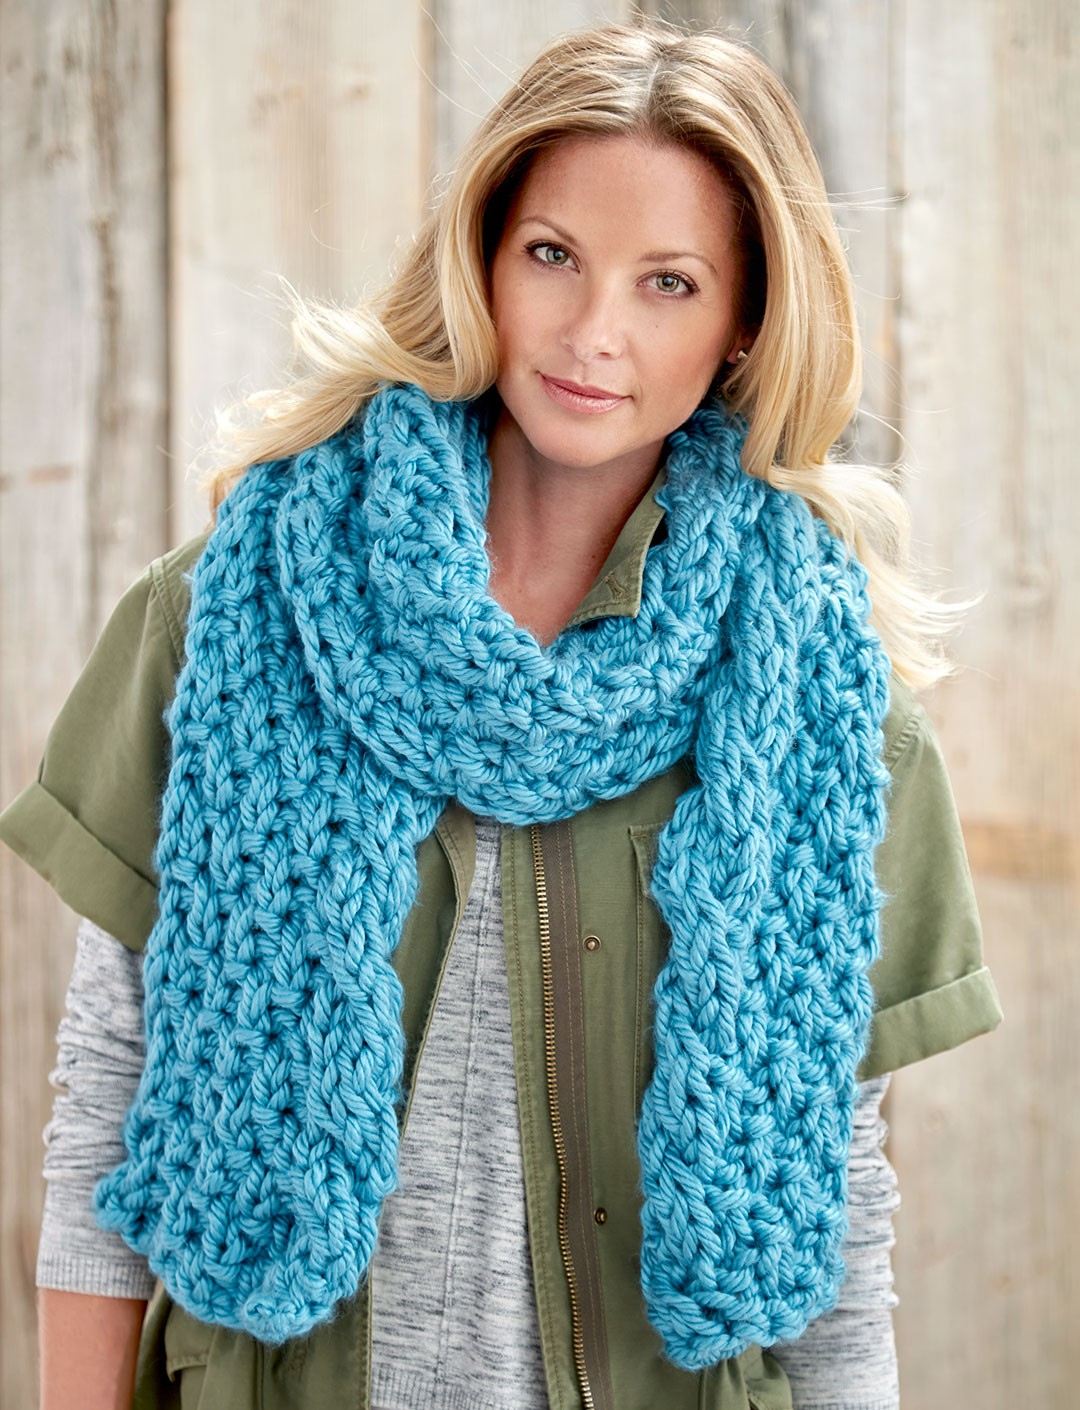 Bernat Knitting Patterns Free : Bernat Cable Edge Scarf, Knit Pattern Yarnspirations